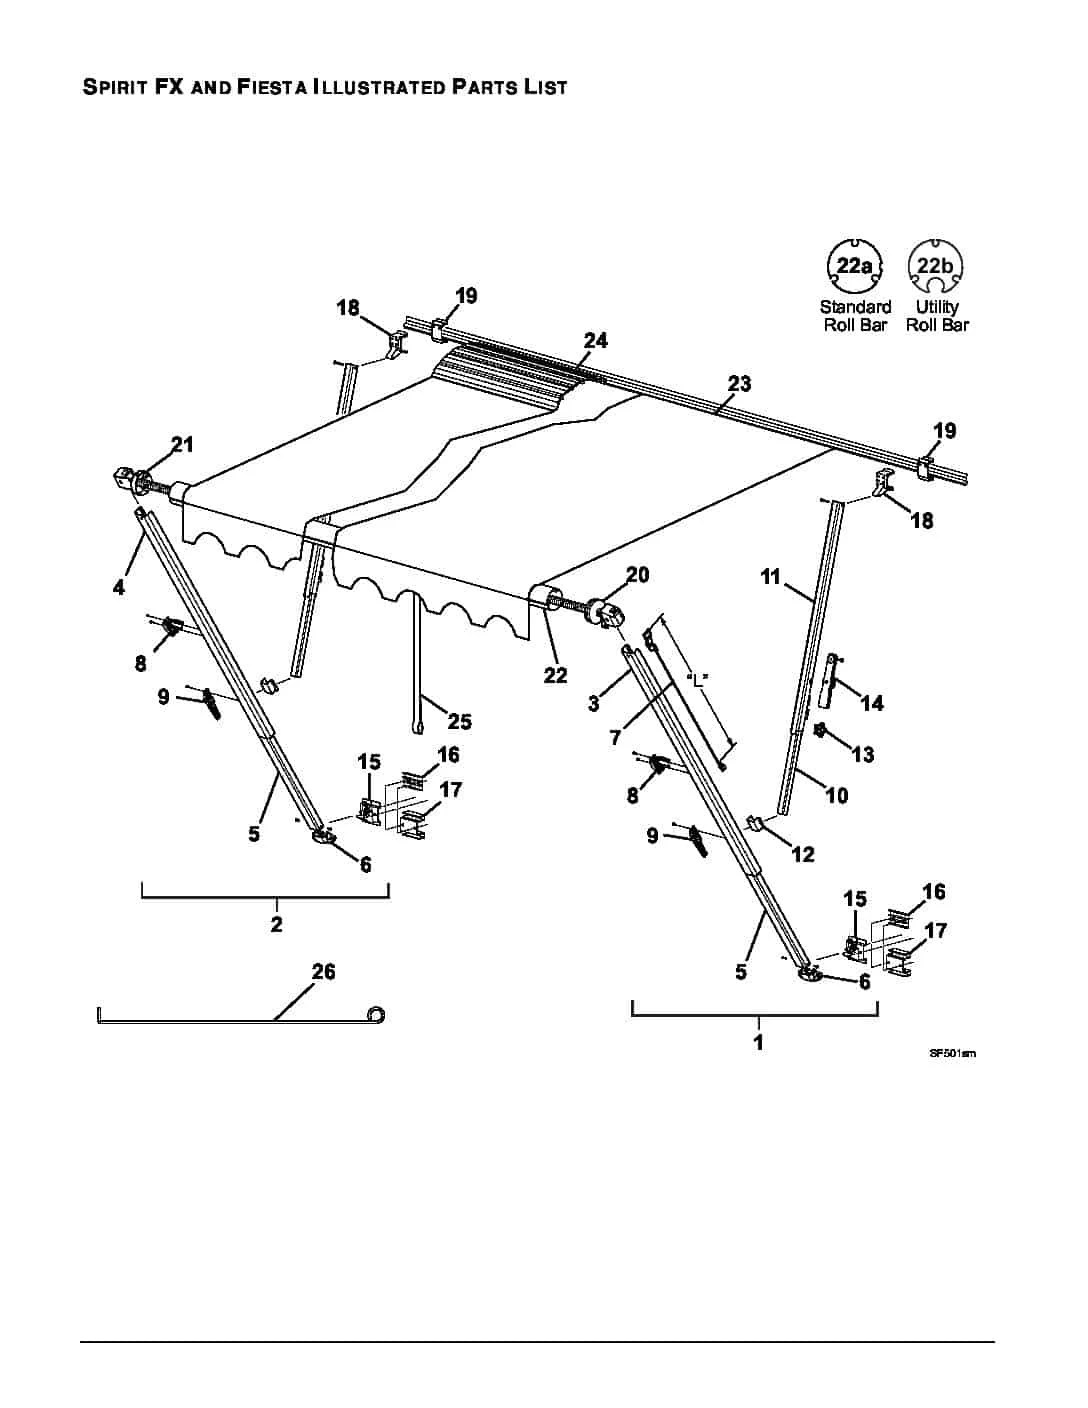 dometic awning parts diagram wiring for kohler engine power